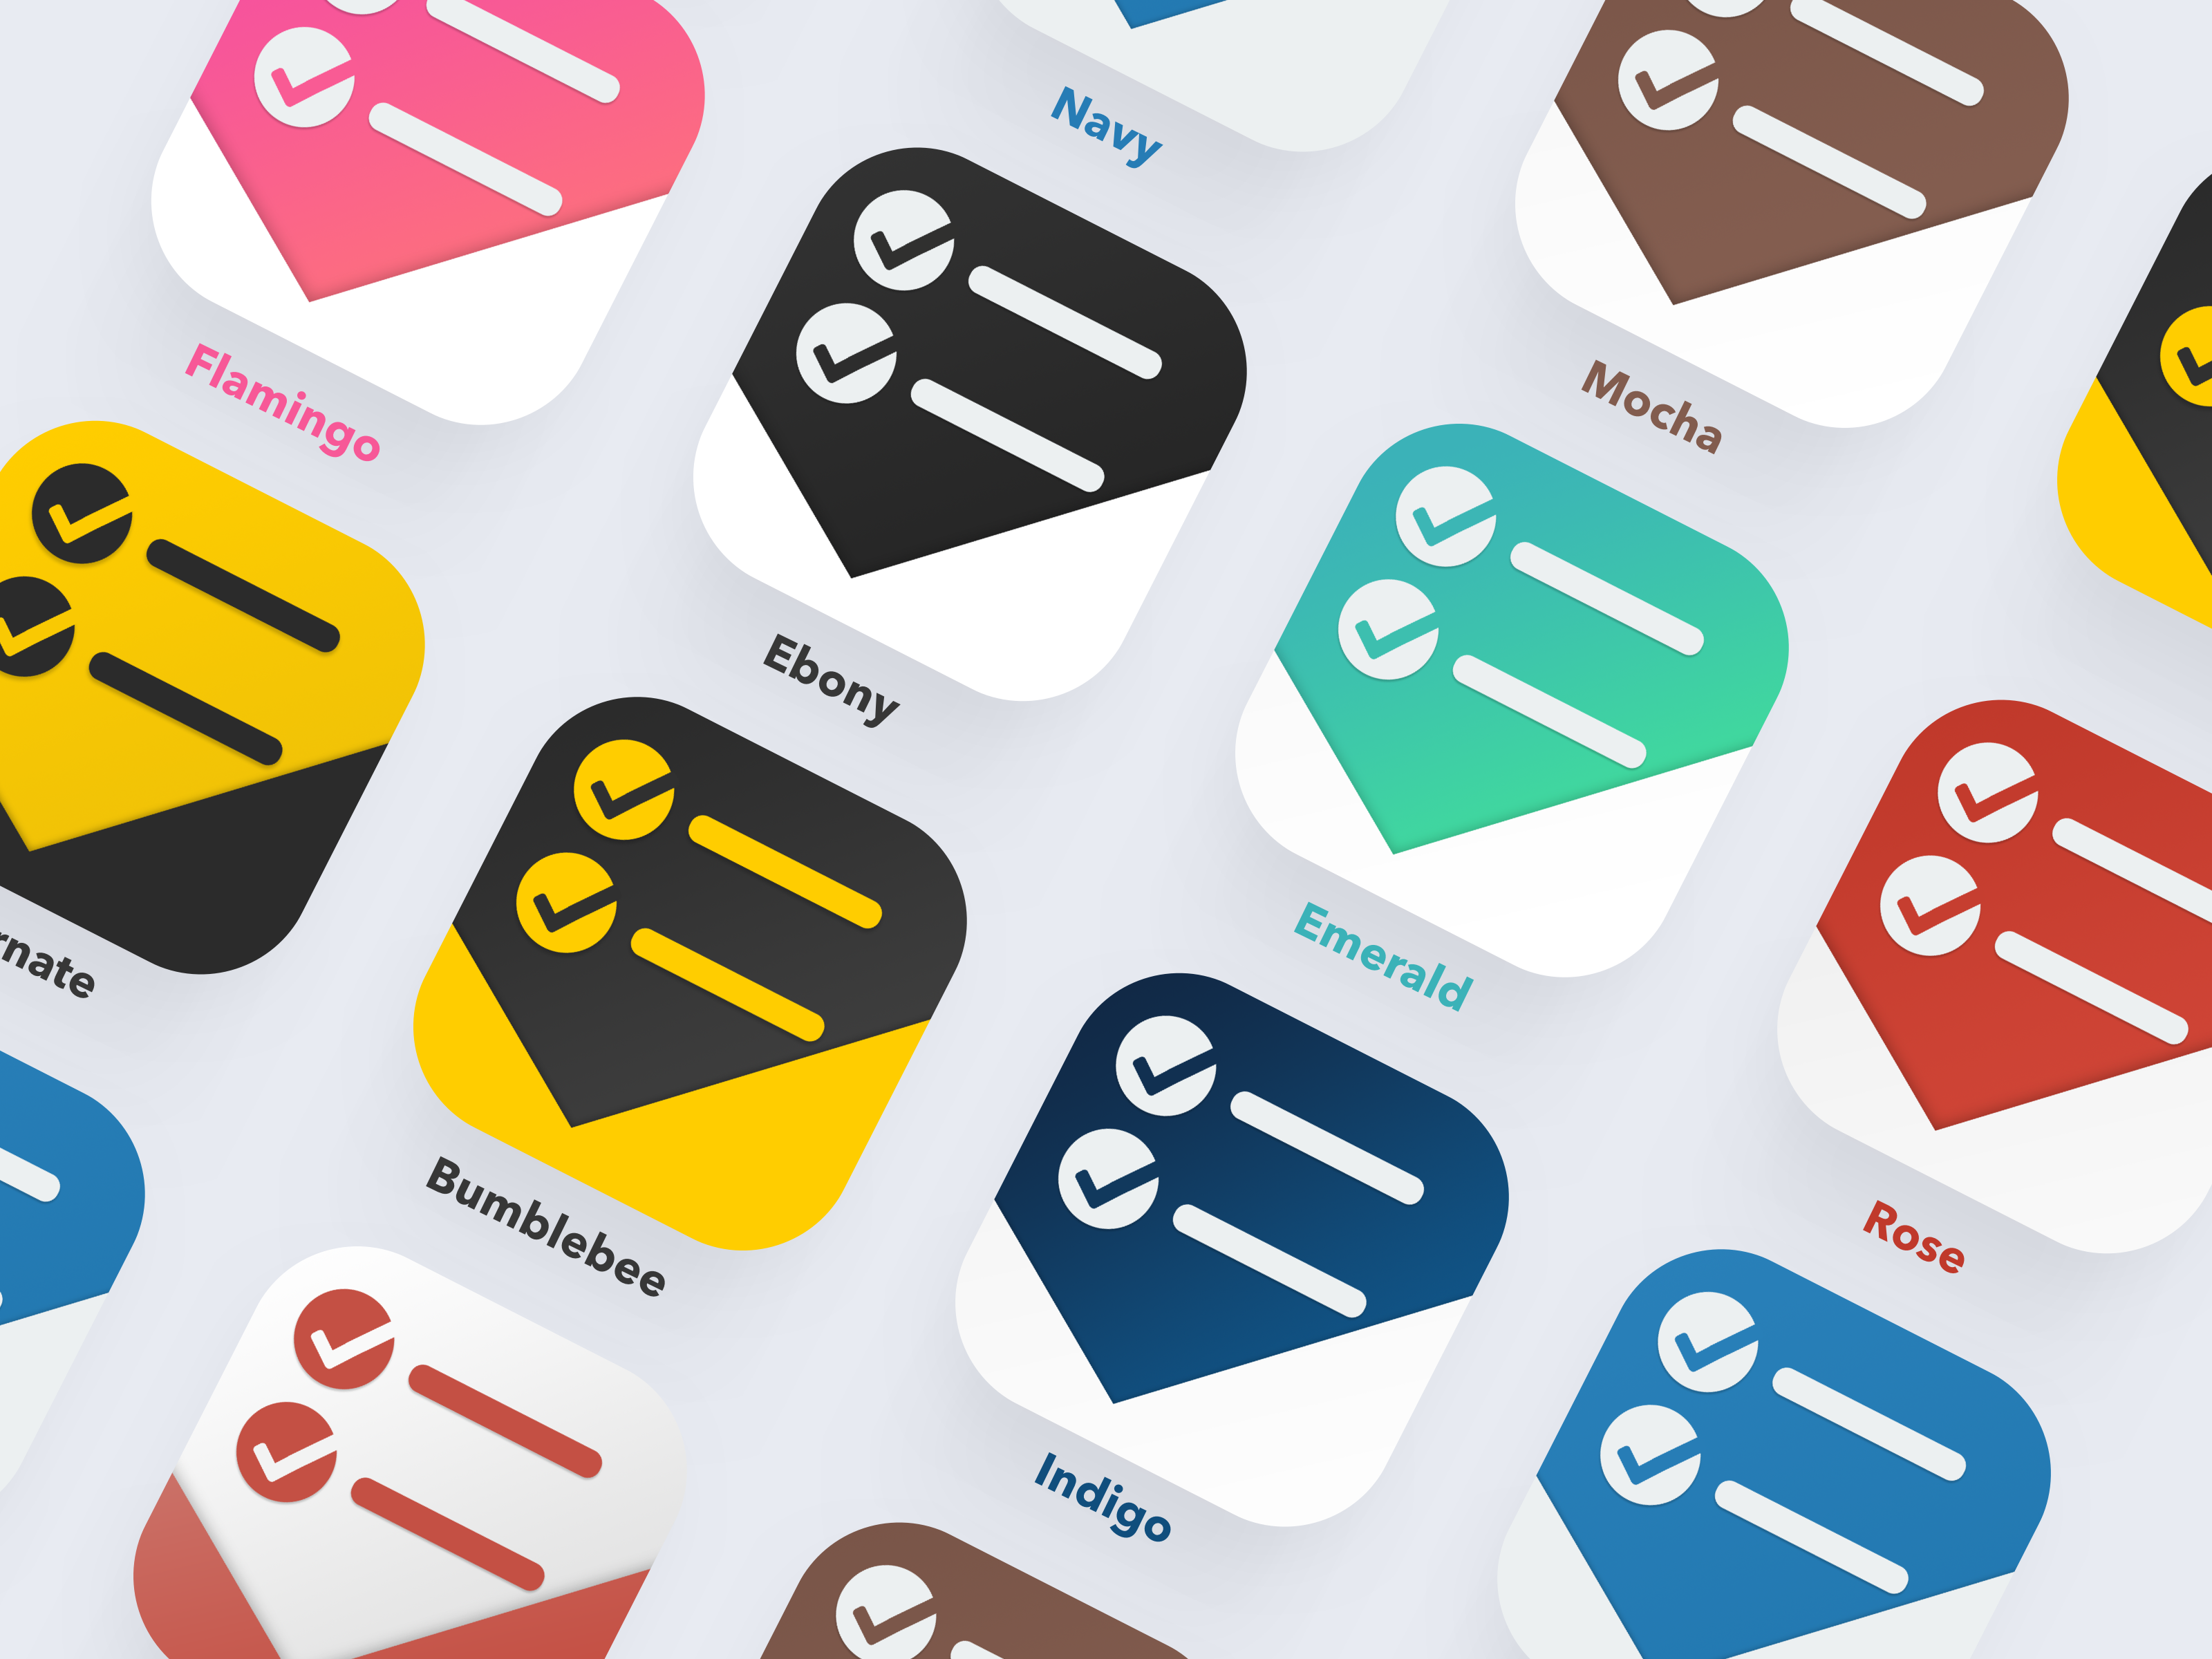 Toodoo app icon colors with names